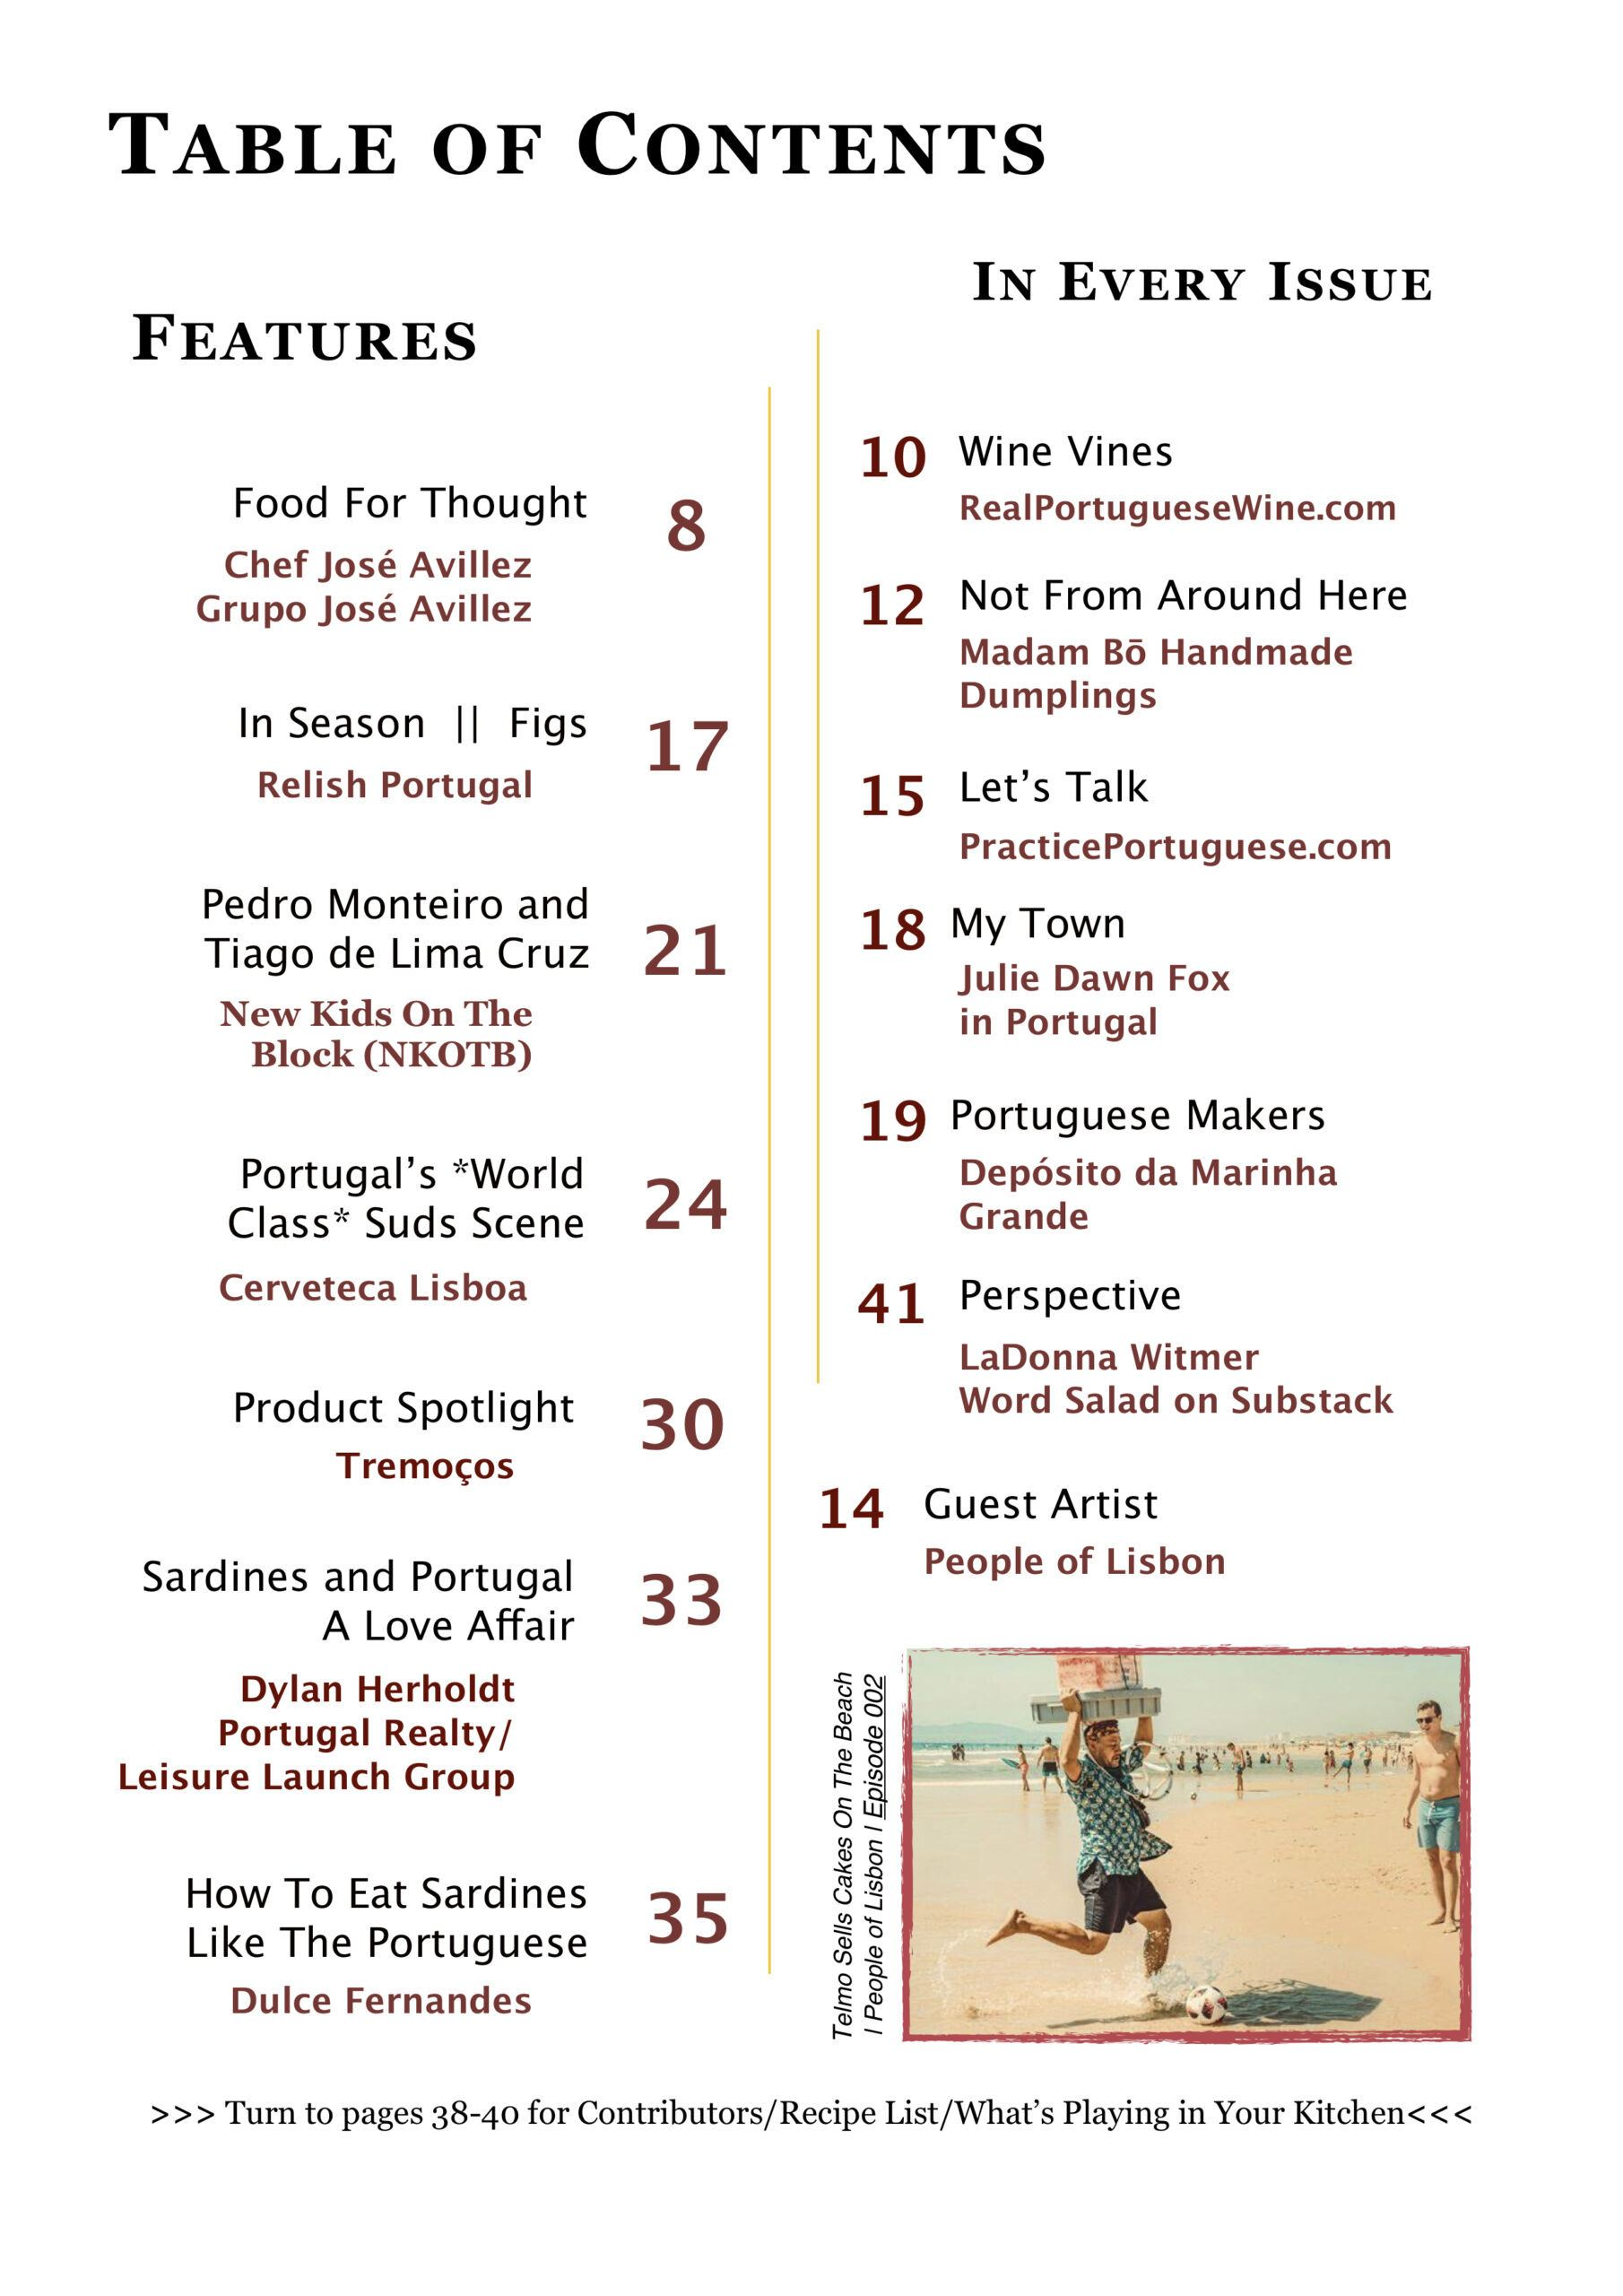 Relish Portugal Jul/Aug/Sep 2021 Table of Contents